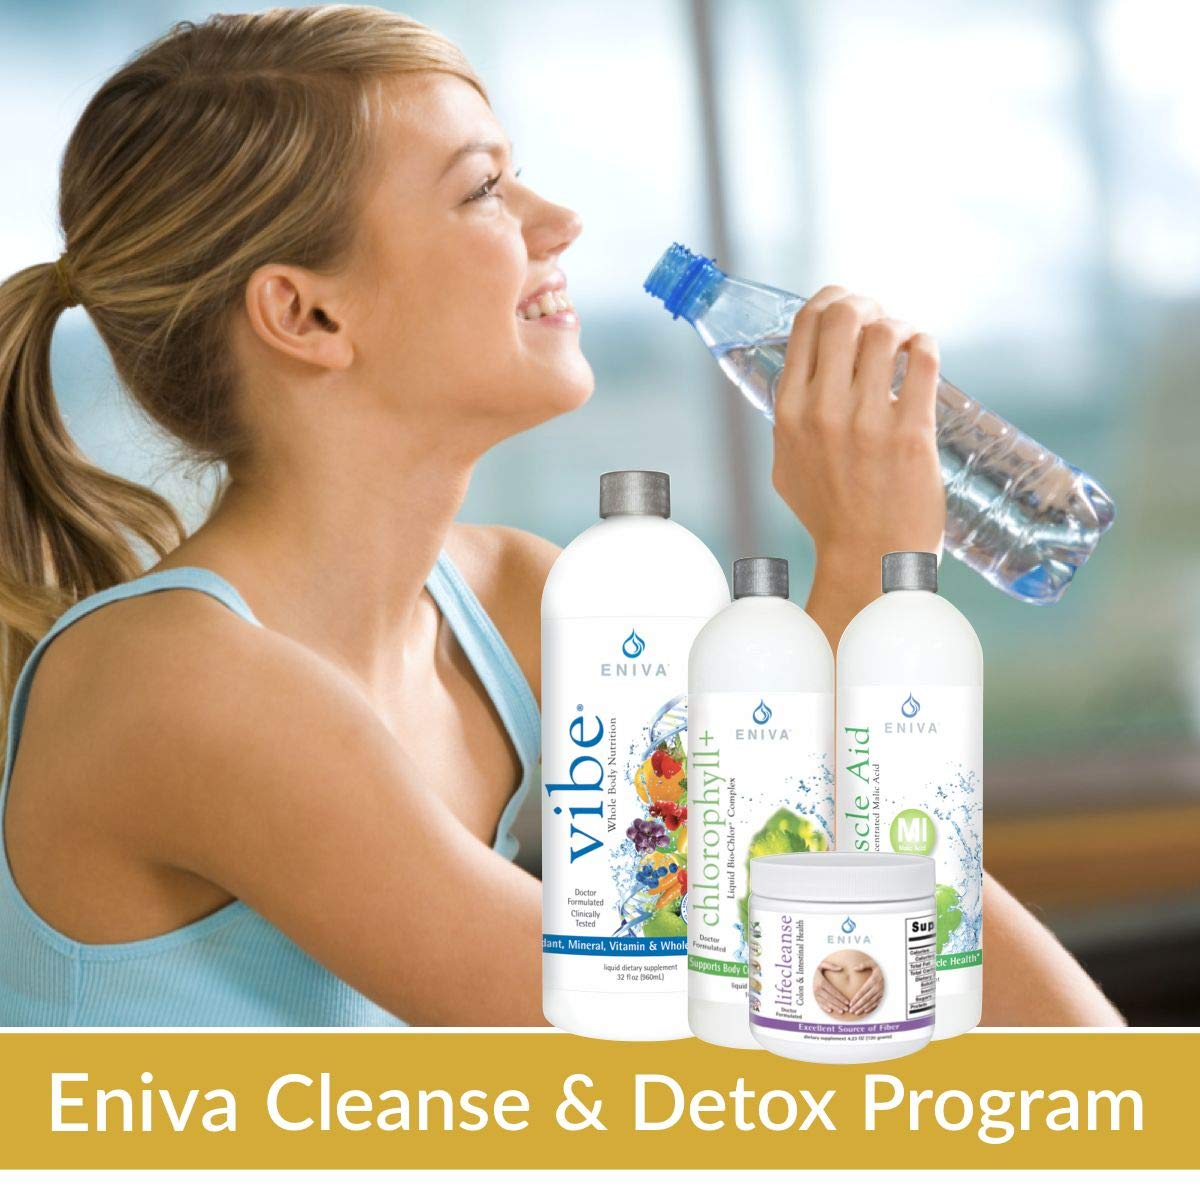 Detox and Cleanse 7 Day NO Dieting Kit for Weight Loss, Belly Fat, Liver, Colon   All Natural. Non Fasting. Complete Kit (with Packets). Voted Best 2018. Eniva Health by Eniva Health (Image #8)